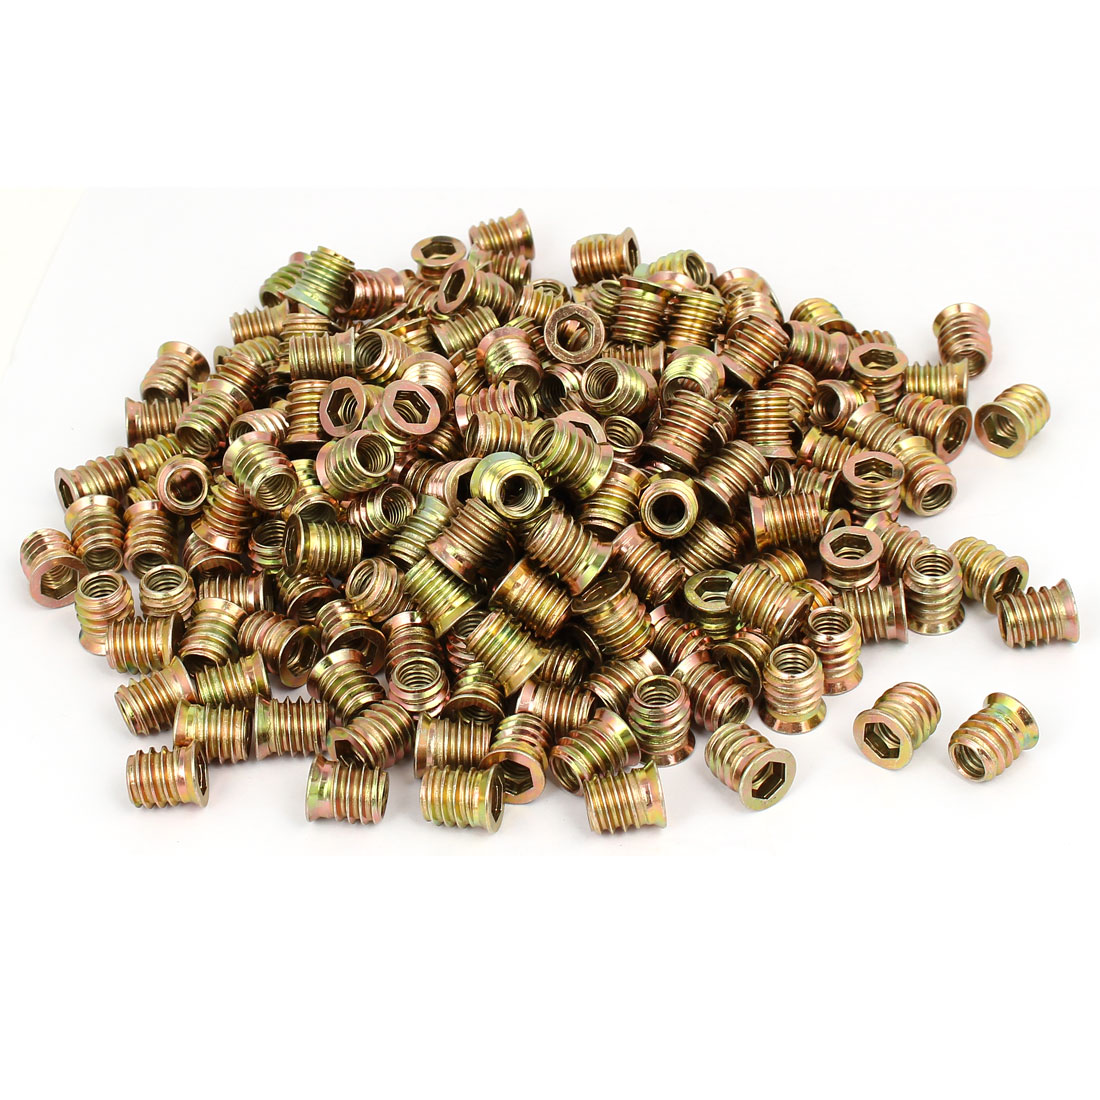 Wood Furniture Fixing Insert Interface Hex Socket E-Nut 8mmx15mm 300pcs